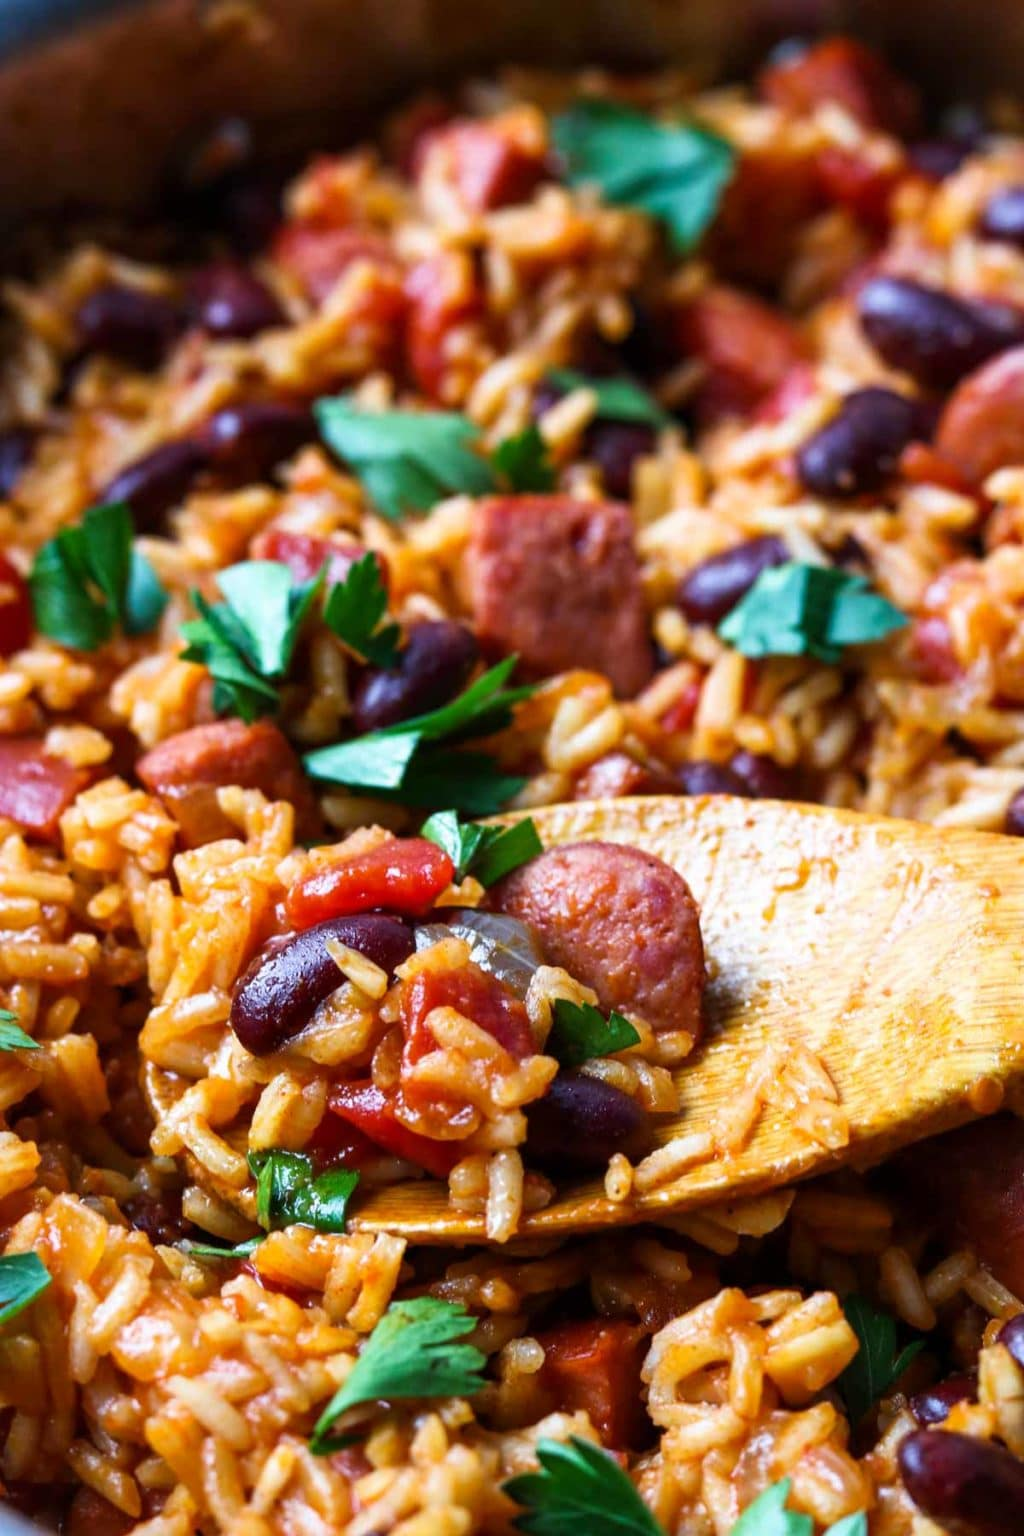 A wooden spoon full of rice, beans, sausage and tomatoes in a pan of dirty rice and beans